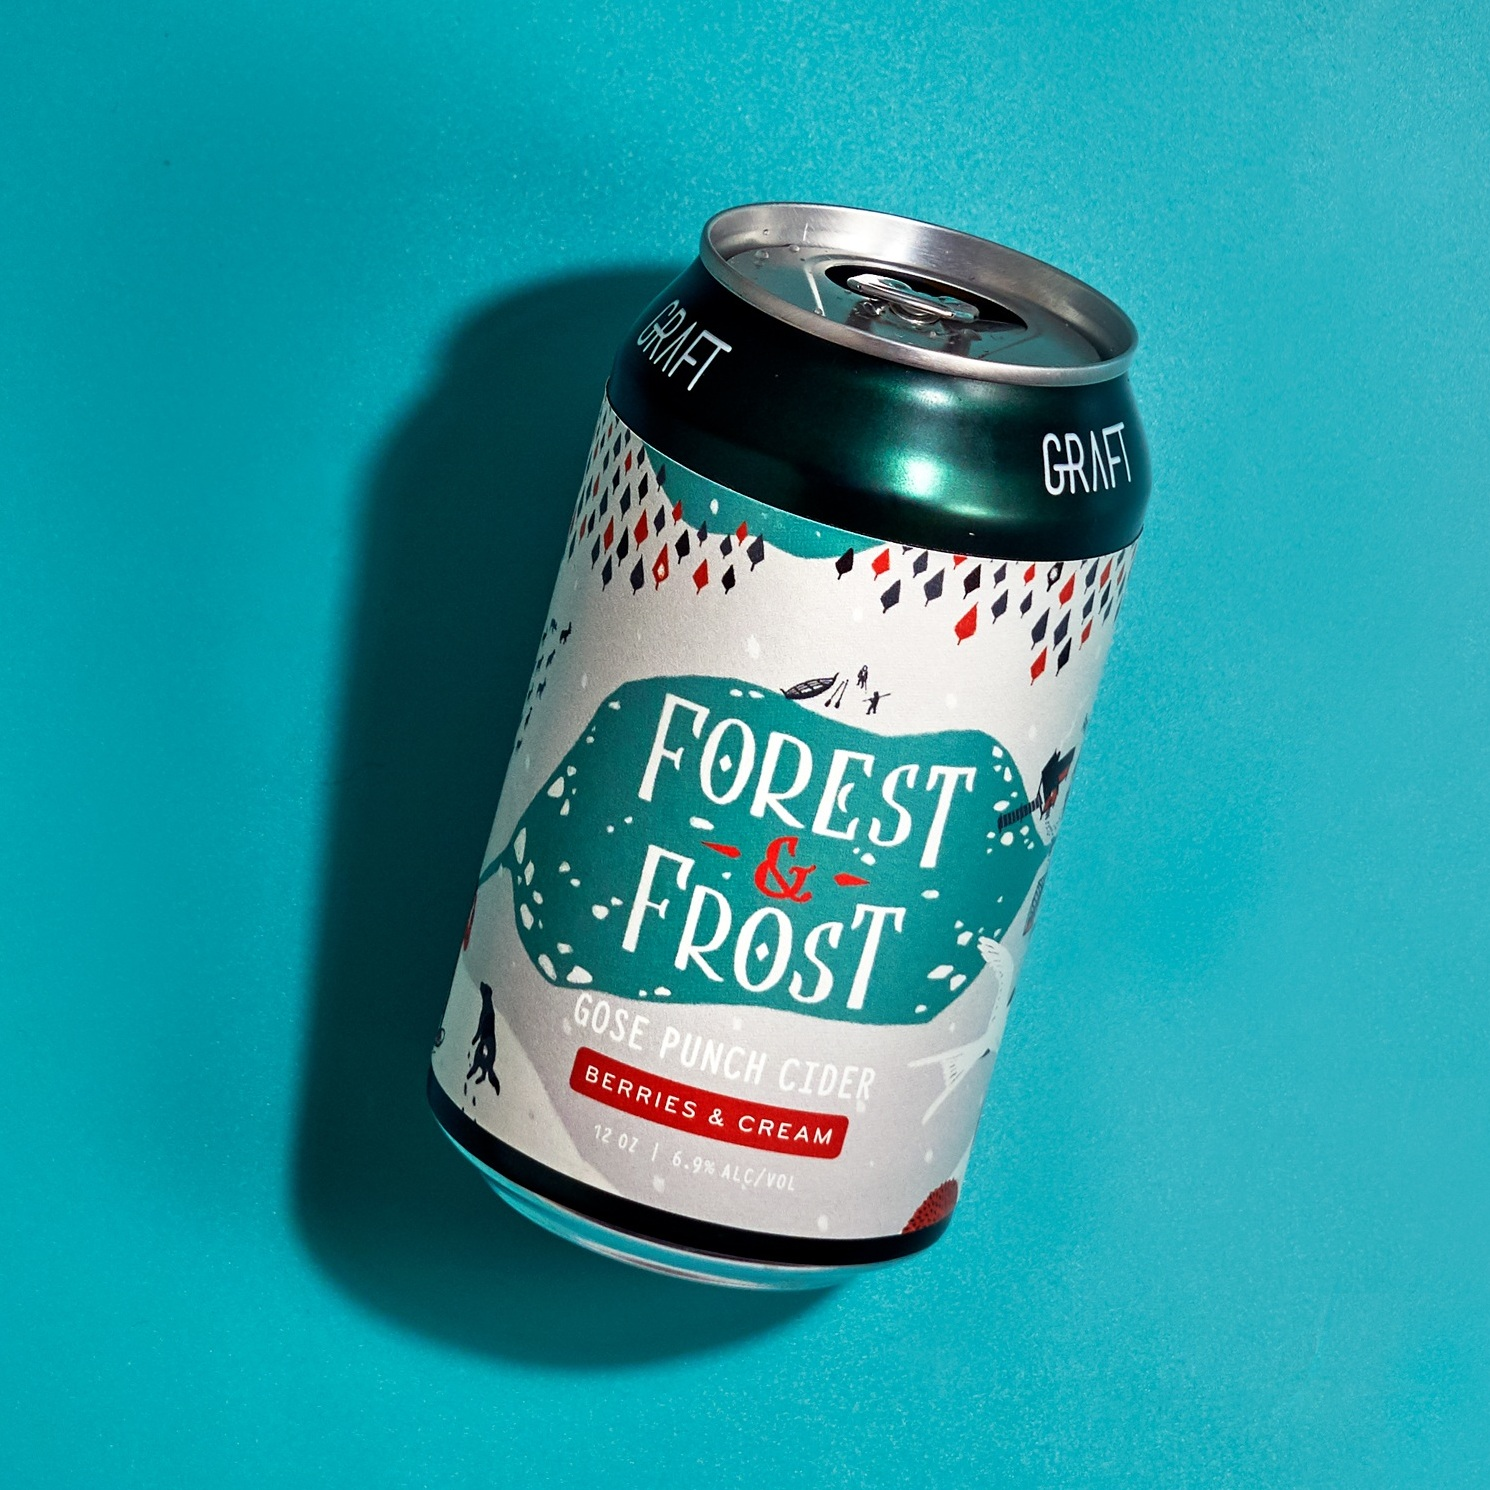 FOREST & FROST  I Berries & Crem Winter punch gose cider with hibiscus, vanilla, orris root & pink sea salt.  #BerriesAndCream    WINTER  I   DEC - FEB    INGREDIENTS  I NY Apples, hibiscus, vanilla, orris root & sea salt.  NUTRITION  I 6.9% ABV • 0g Sugar • 2g Carb • 140 Cal • Gluten Free!